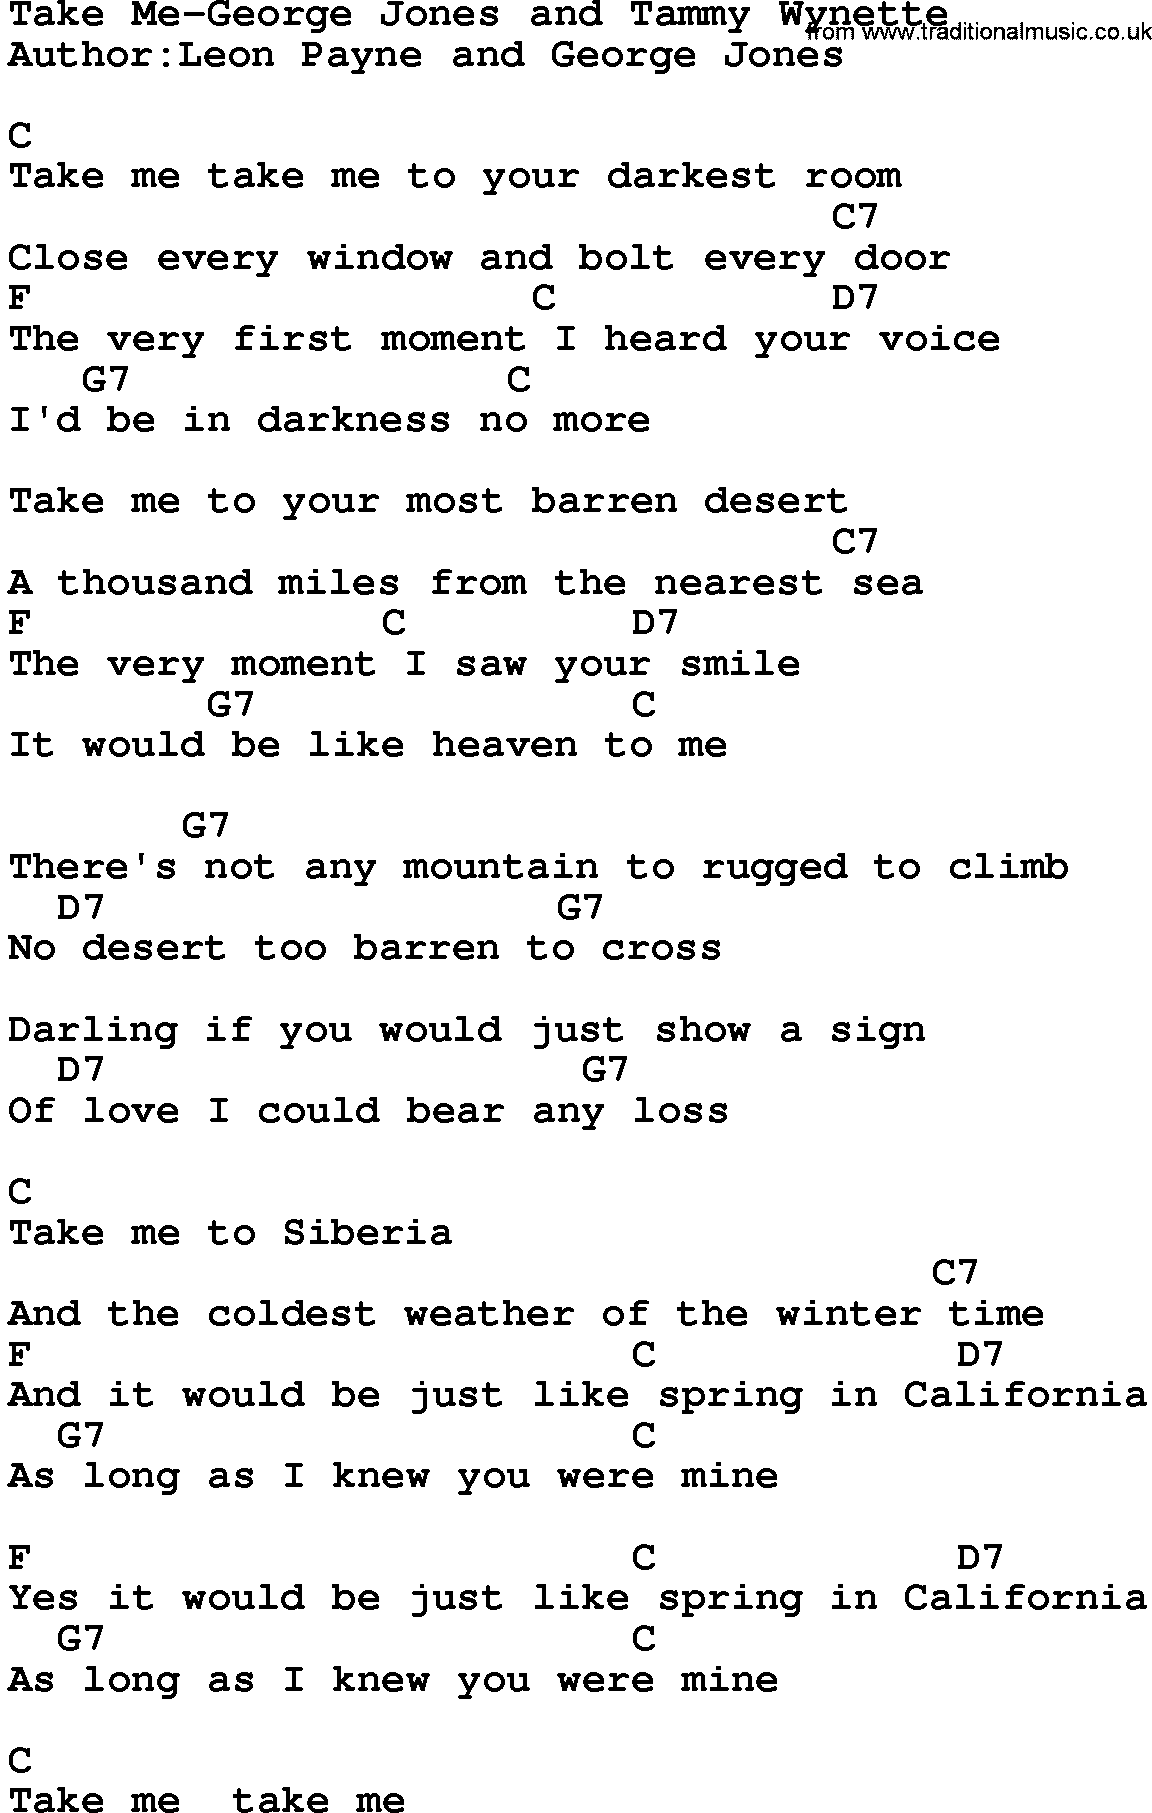 Country musictake me george jones and tammy wynette lyrics and chords hexwebz Image collections